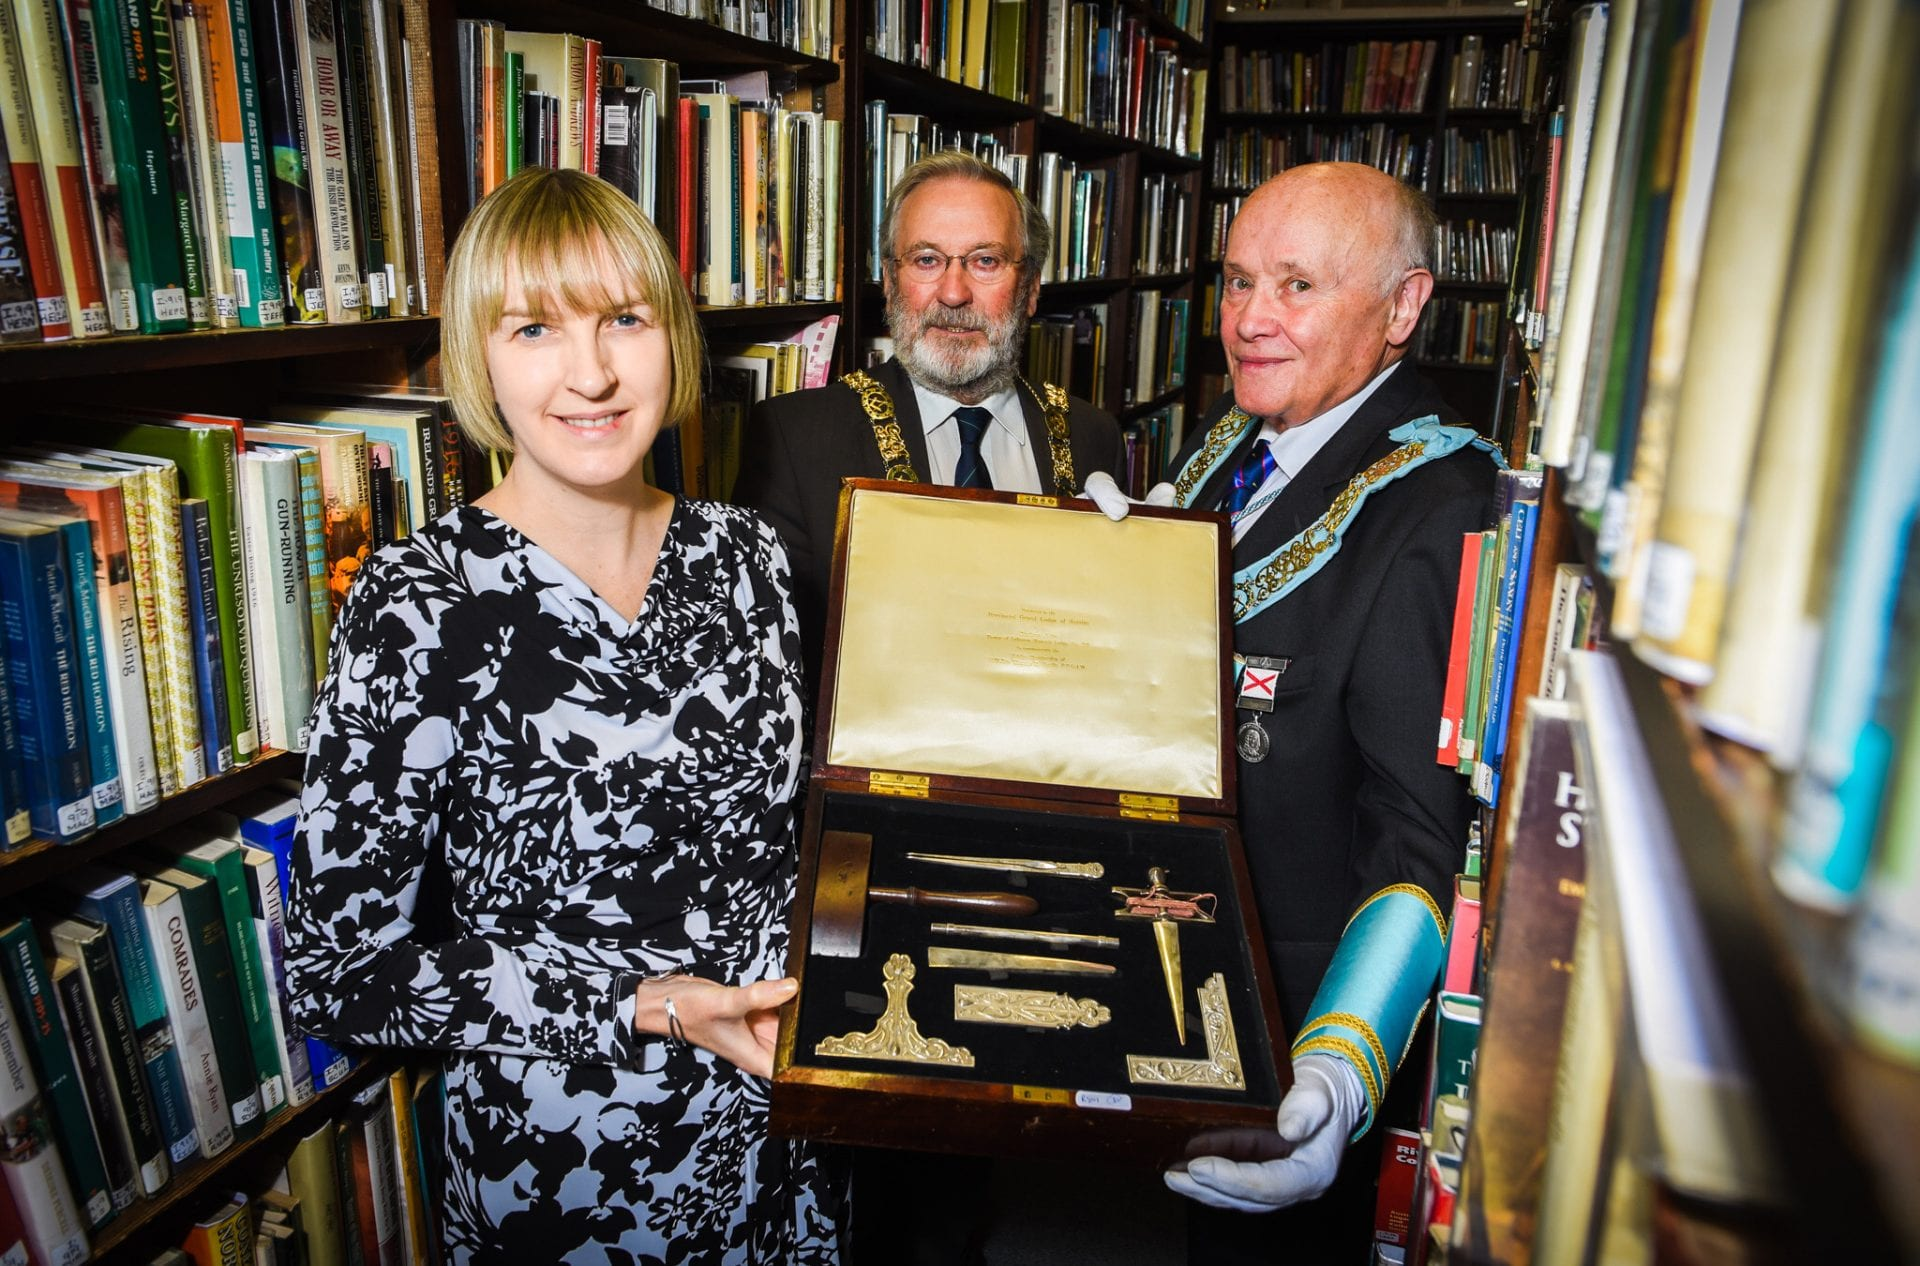 Lifting the lid on 150 Years of Freemasonry · BUSINESSFIRST